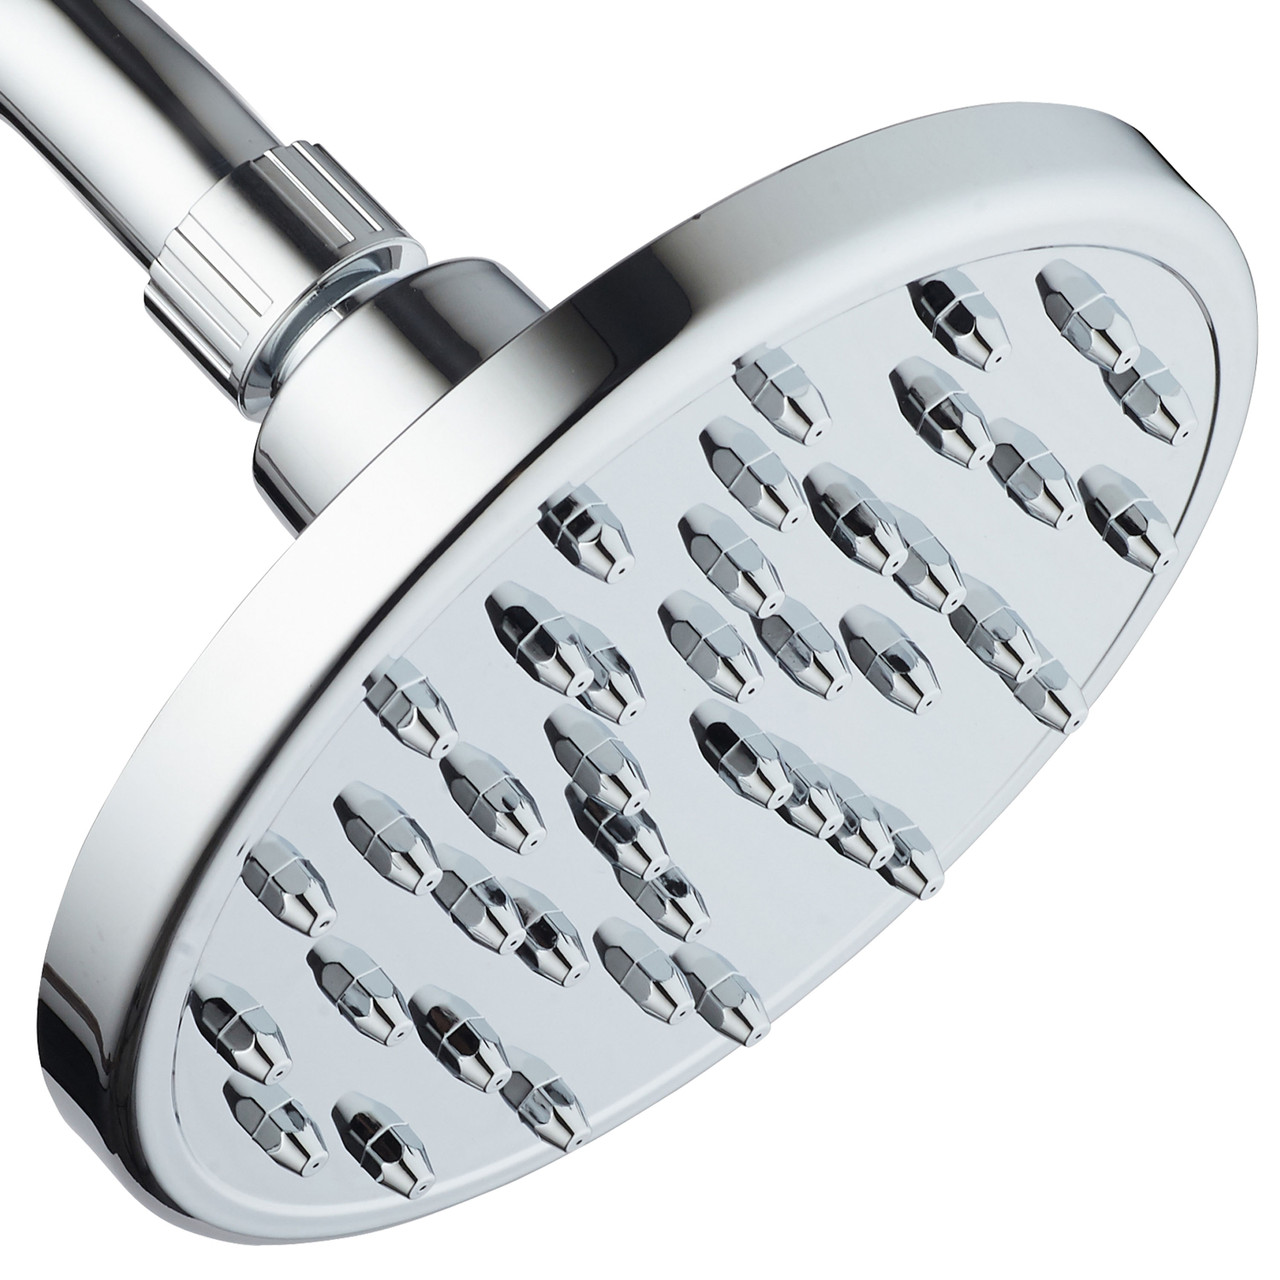 Megarain Rainfall High Pressure 6 Inch Shower Head By Aquaspa Angle Adjustable Solid Brass Ball Joint 40 Jets Full Chrome Finish Excellent